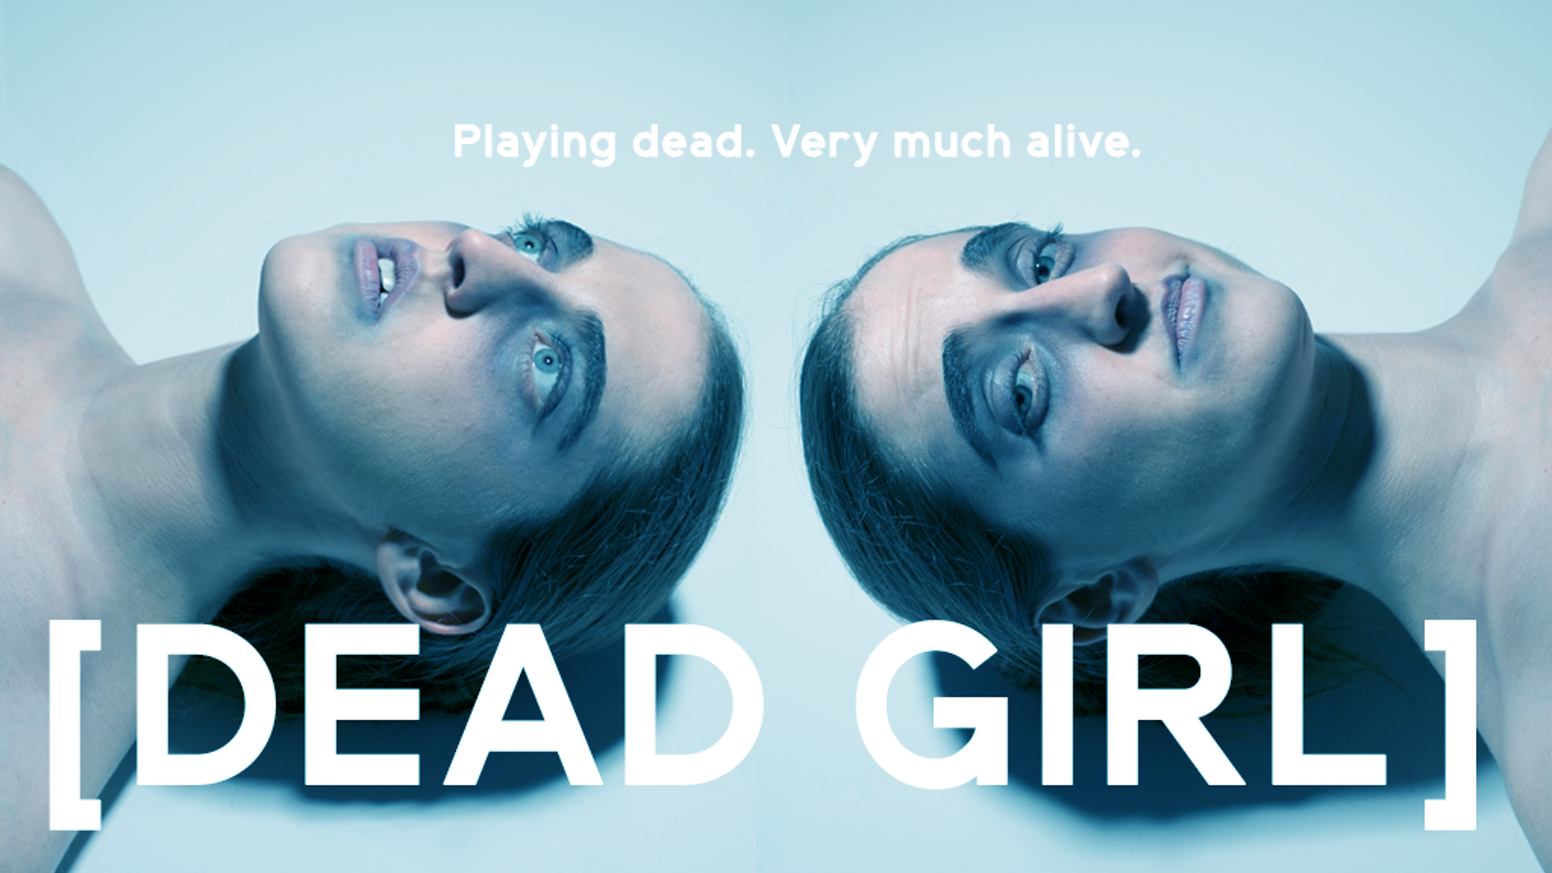 Dead Girl is about playing dead to keep one's career, and dreams, alive.